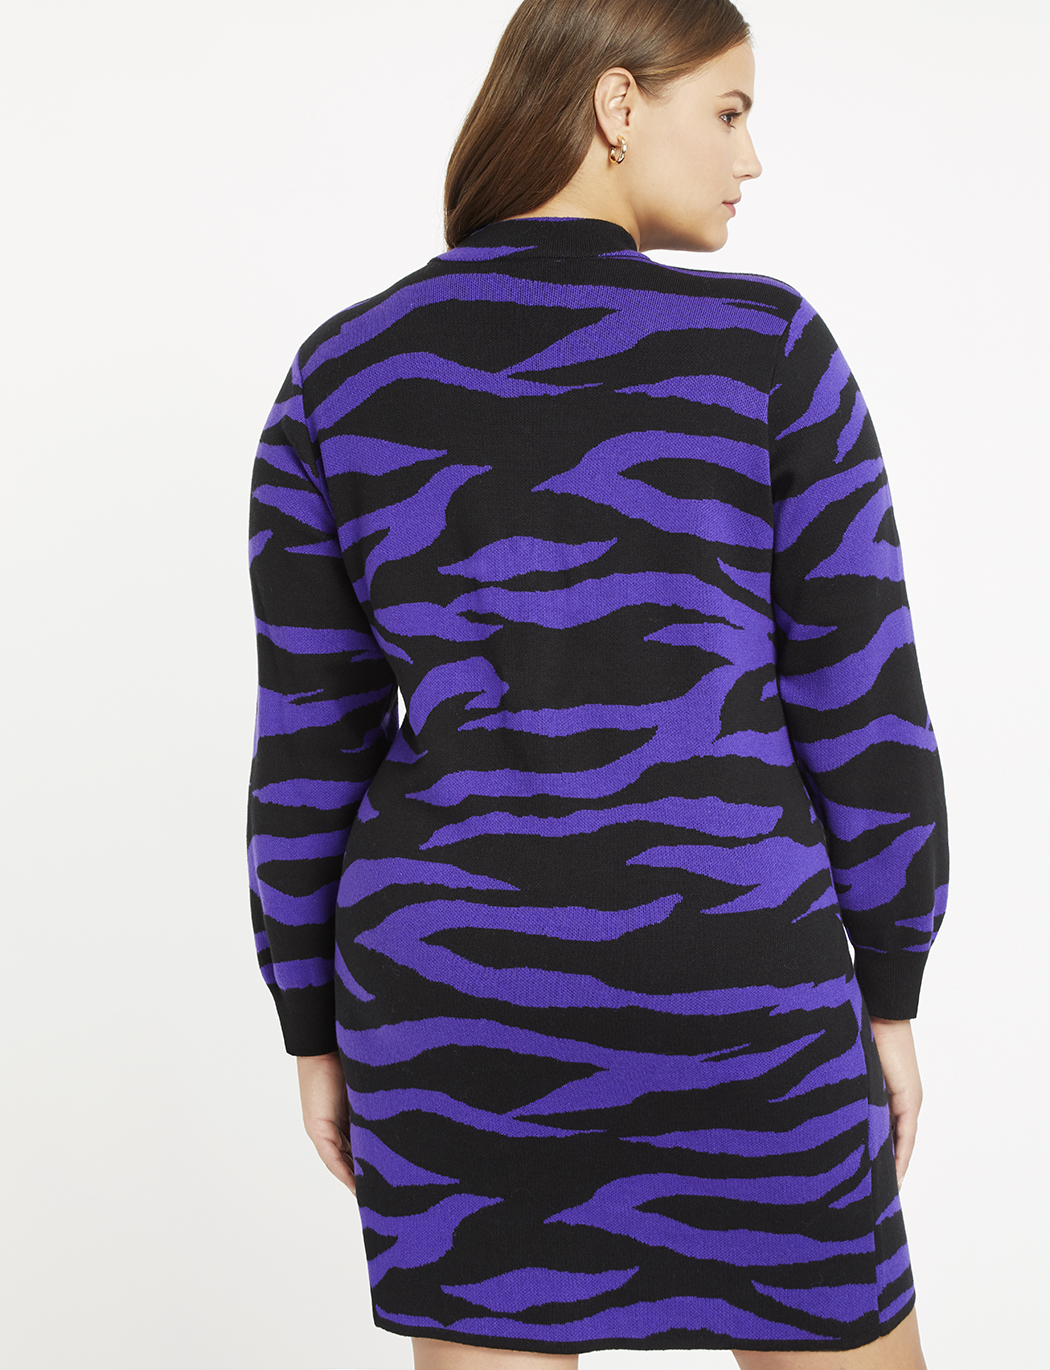 Tiger Intarsia Sweater Dress